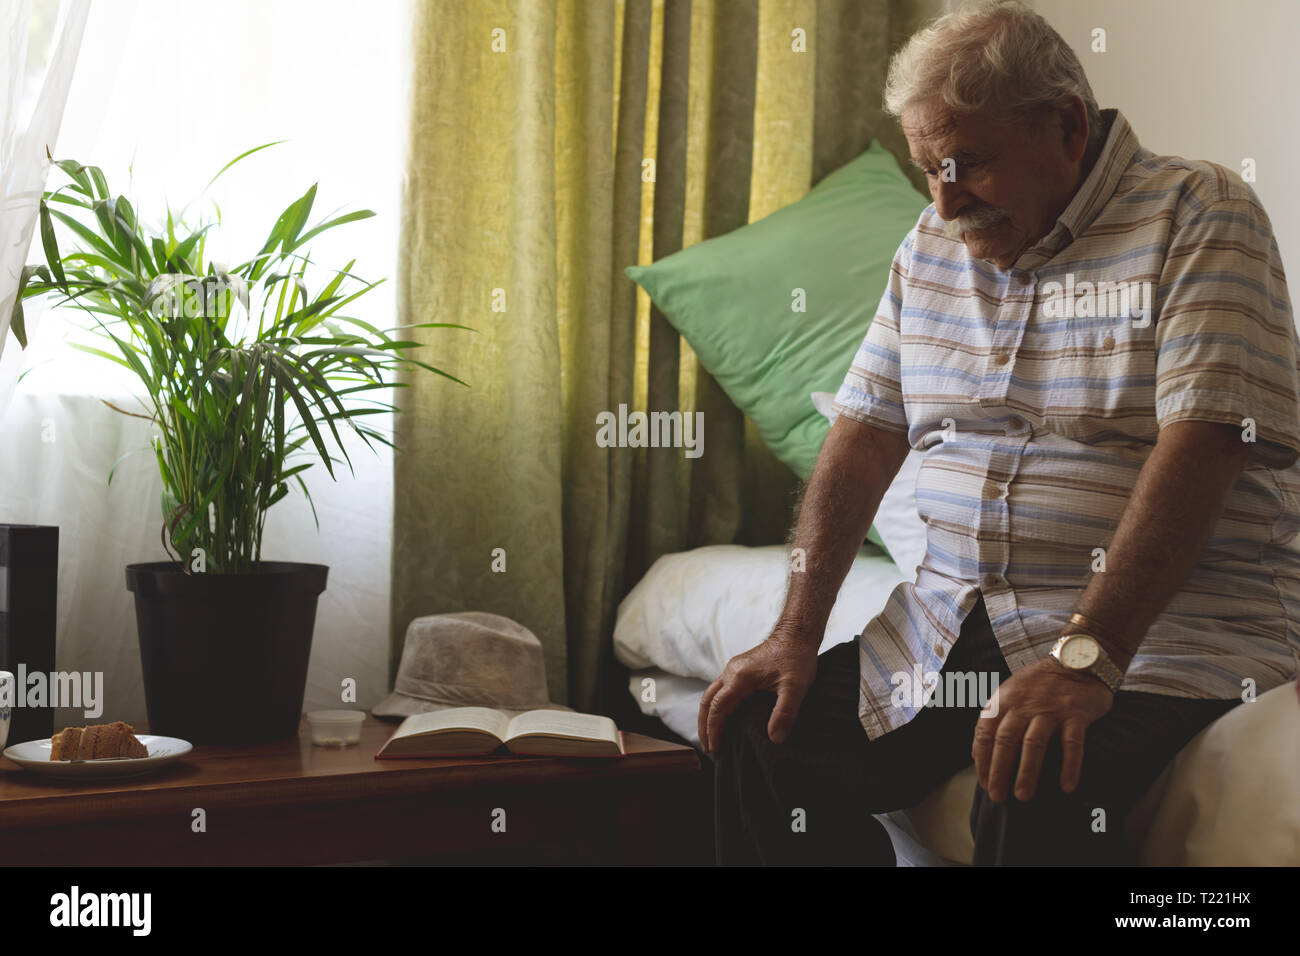 Sad Senior Man Sitting In A Room At Nursing Home Stock Photo Alamy